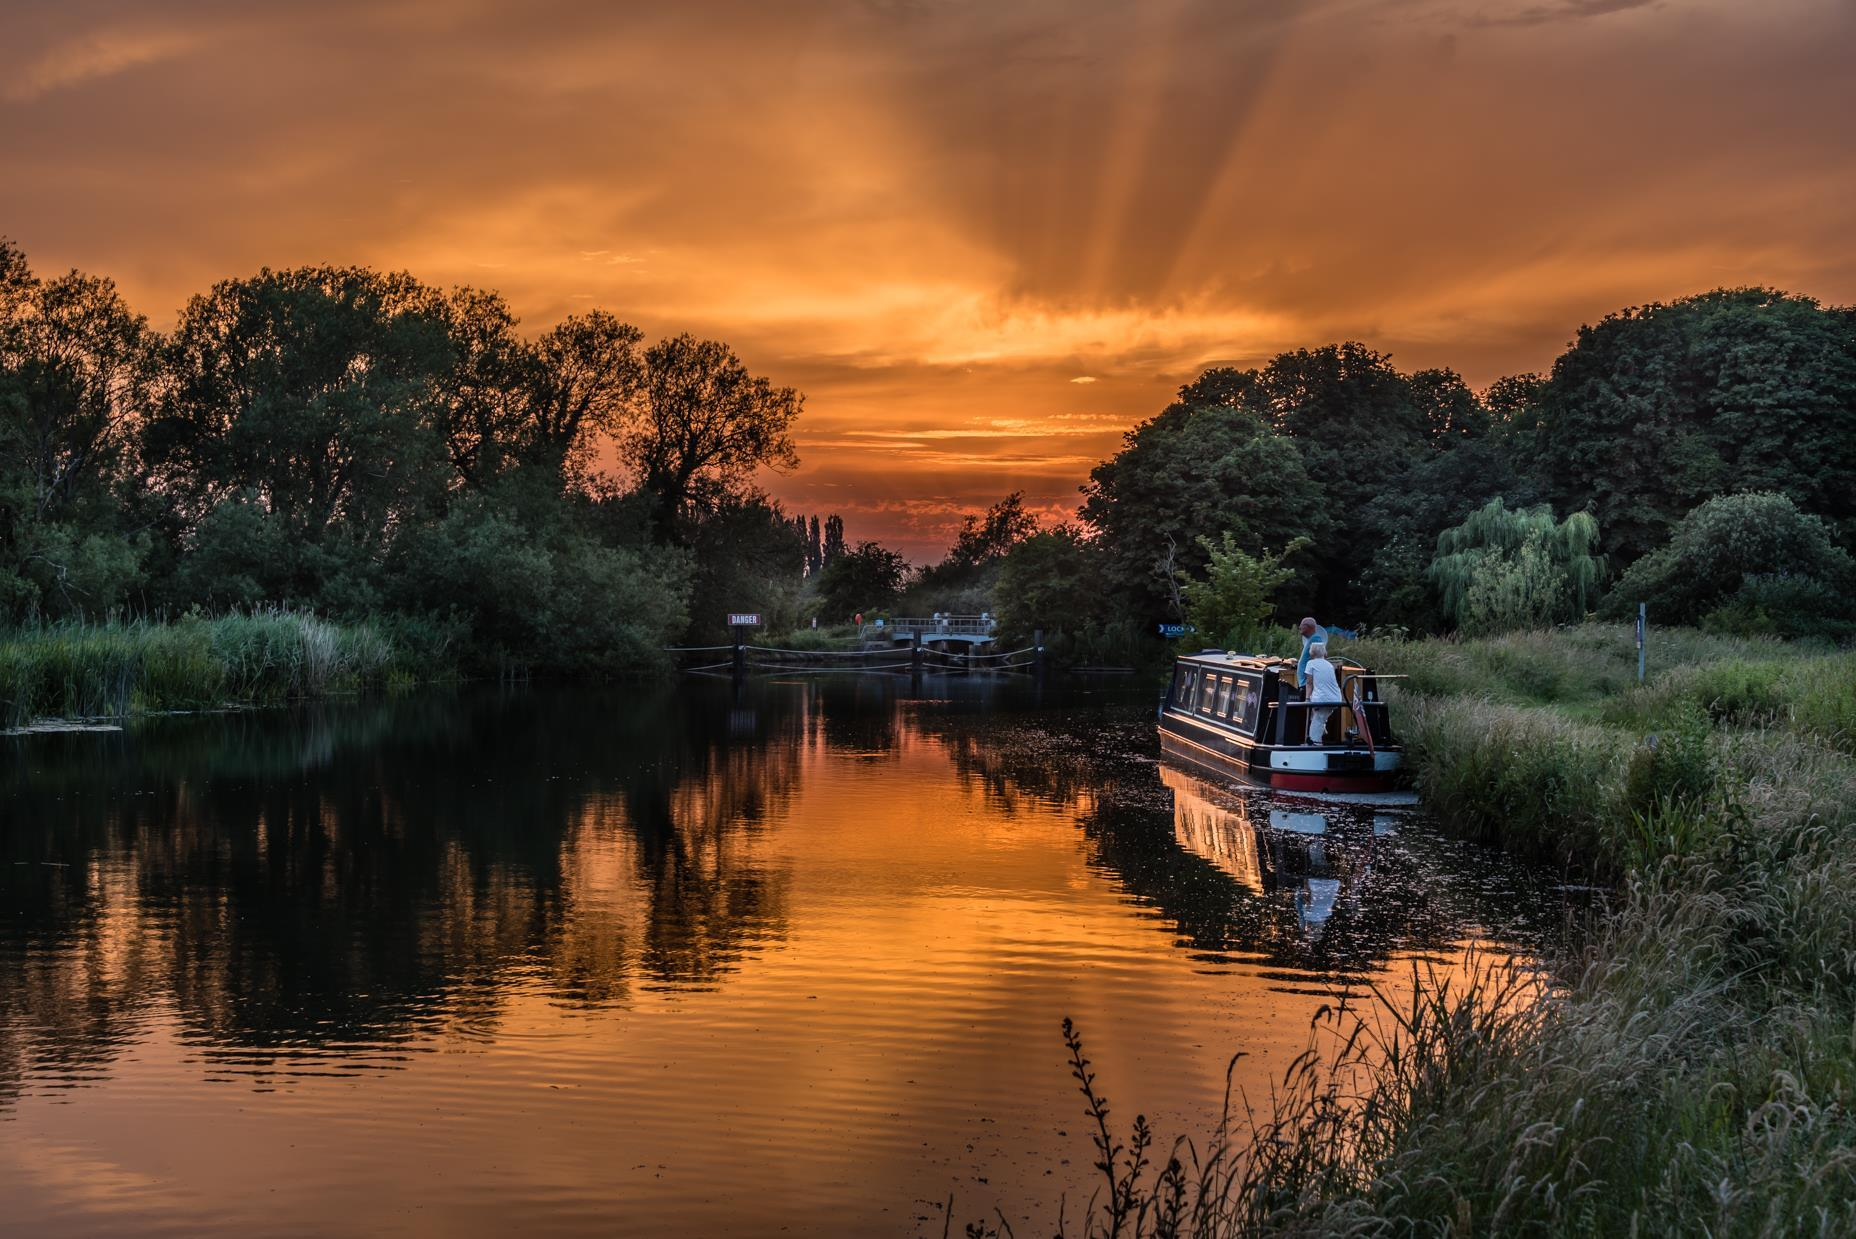 The sun sets over Pinkhill Lock by Anthony Morris